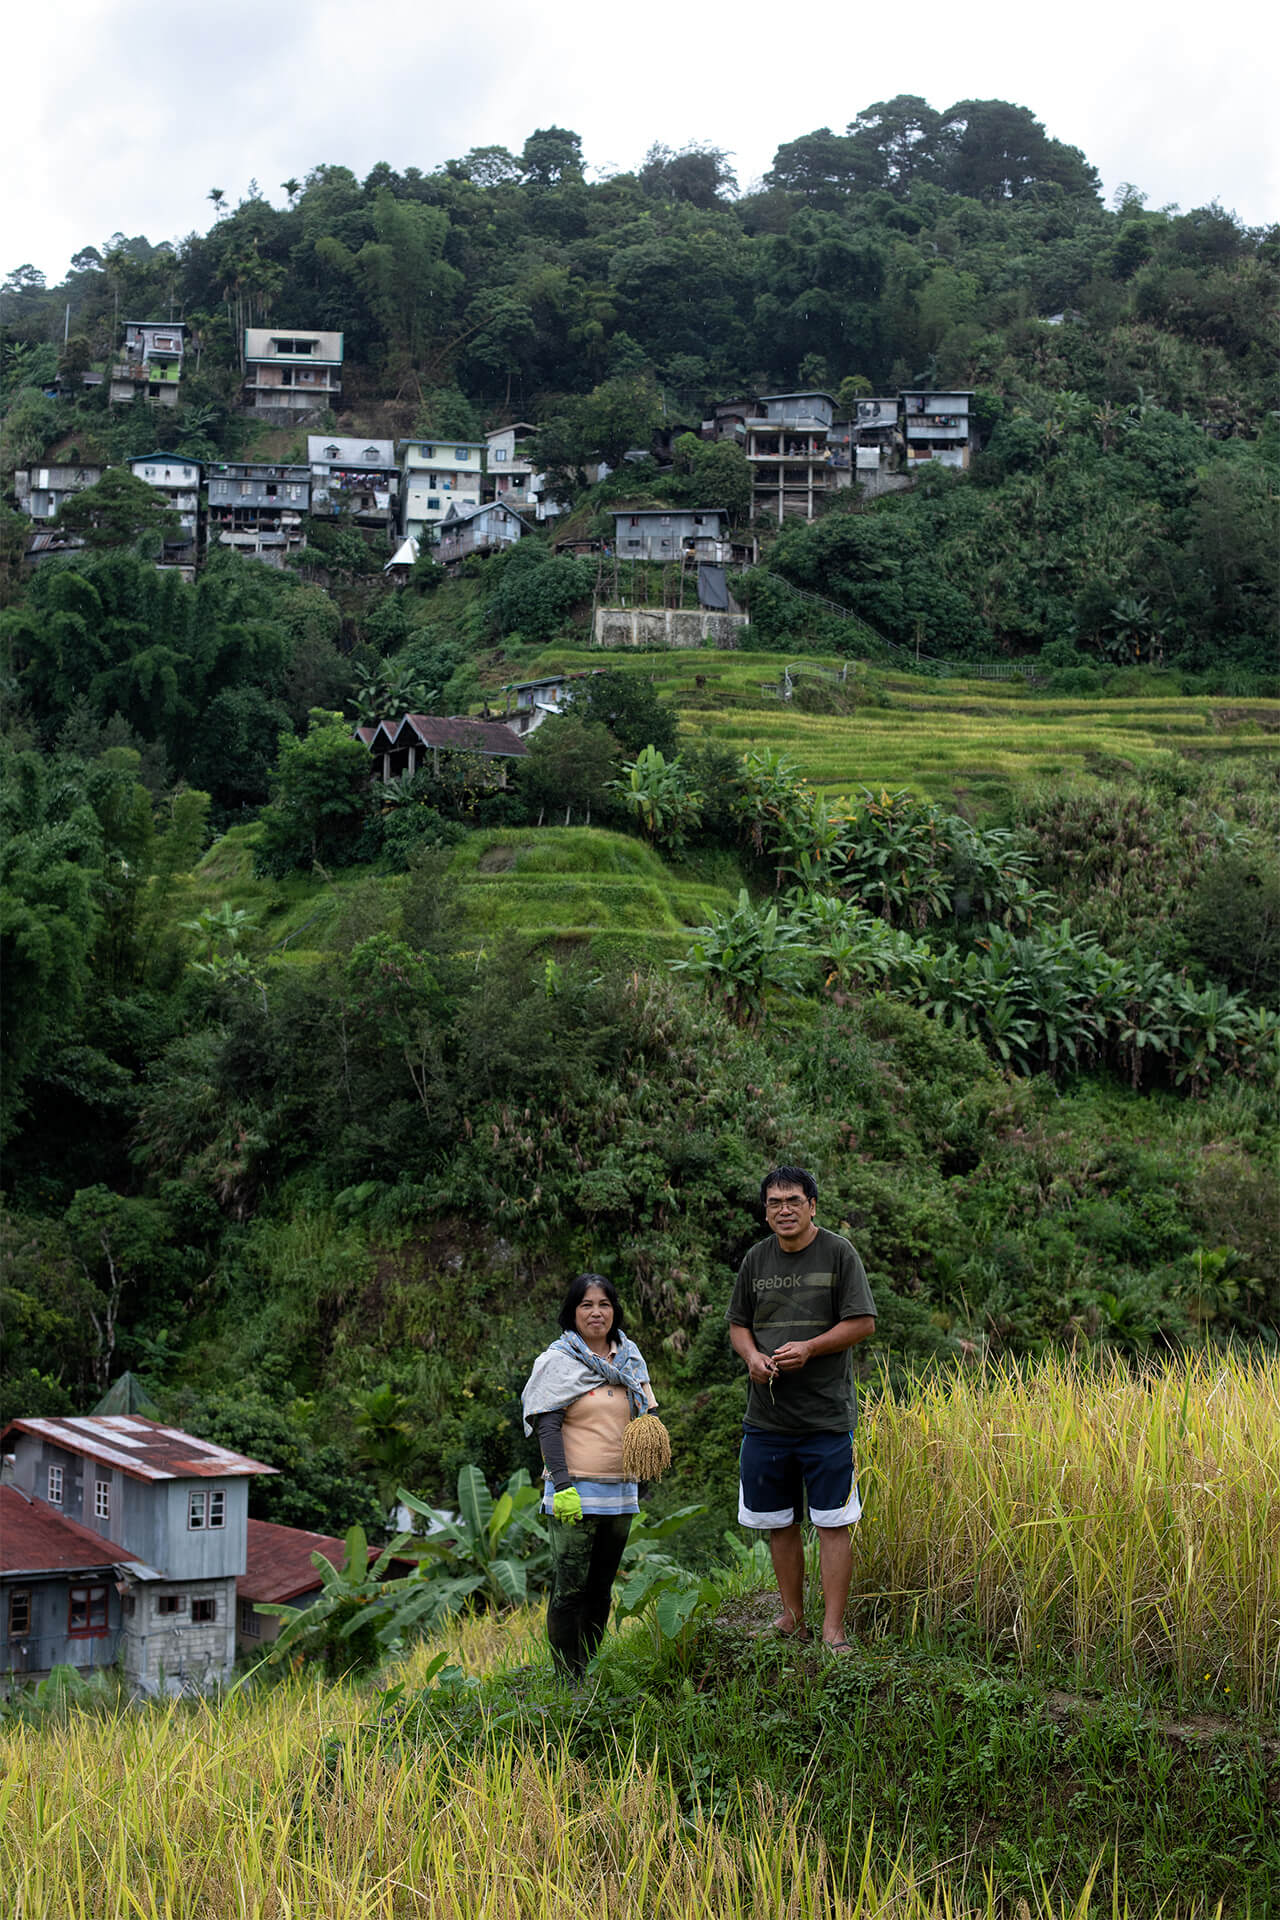 Heirloom rice farmers against the backdrop of the rice terraces and the surrounding community.